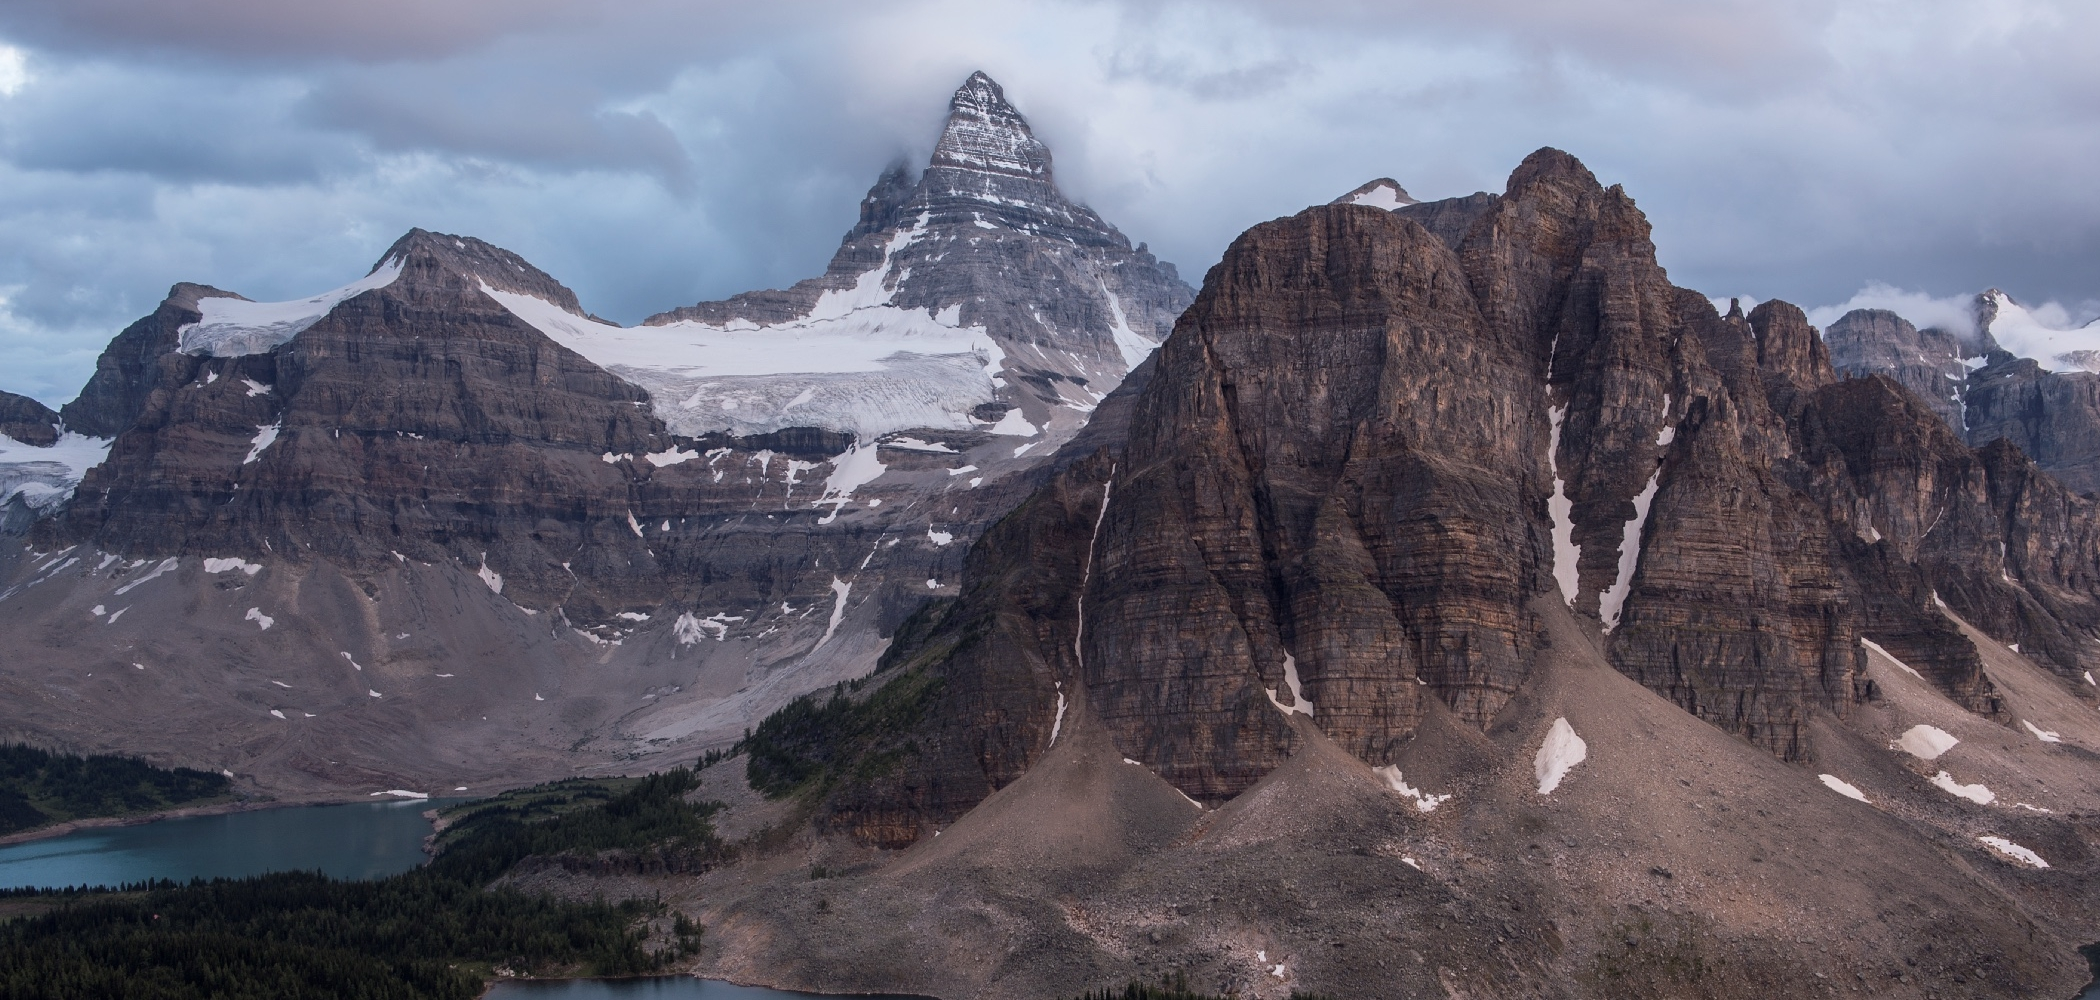 Hiking in Mount Assiniboine Provincial Park